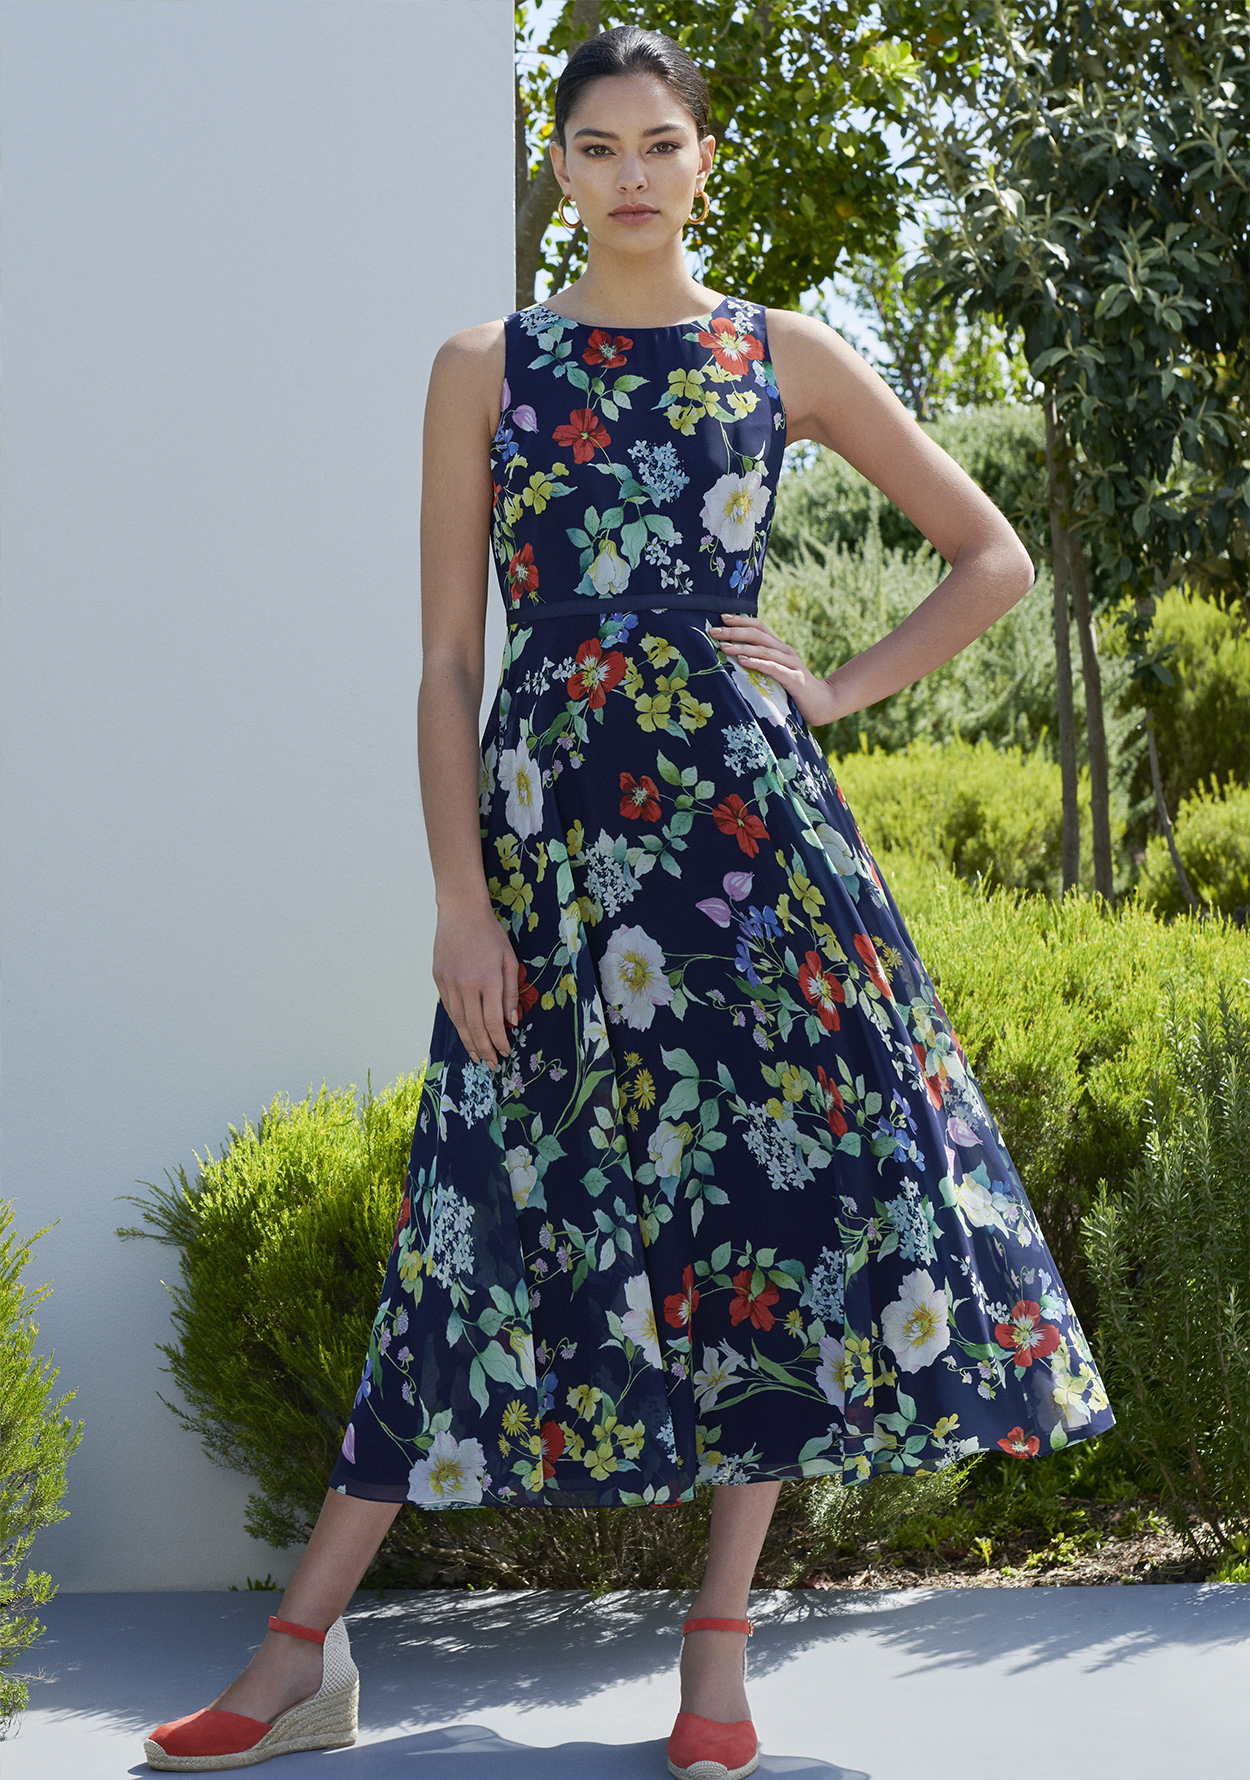 Women poses in a dark blue floral midi dress with bright red espadrille heeled shoes.